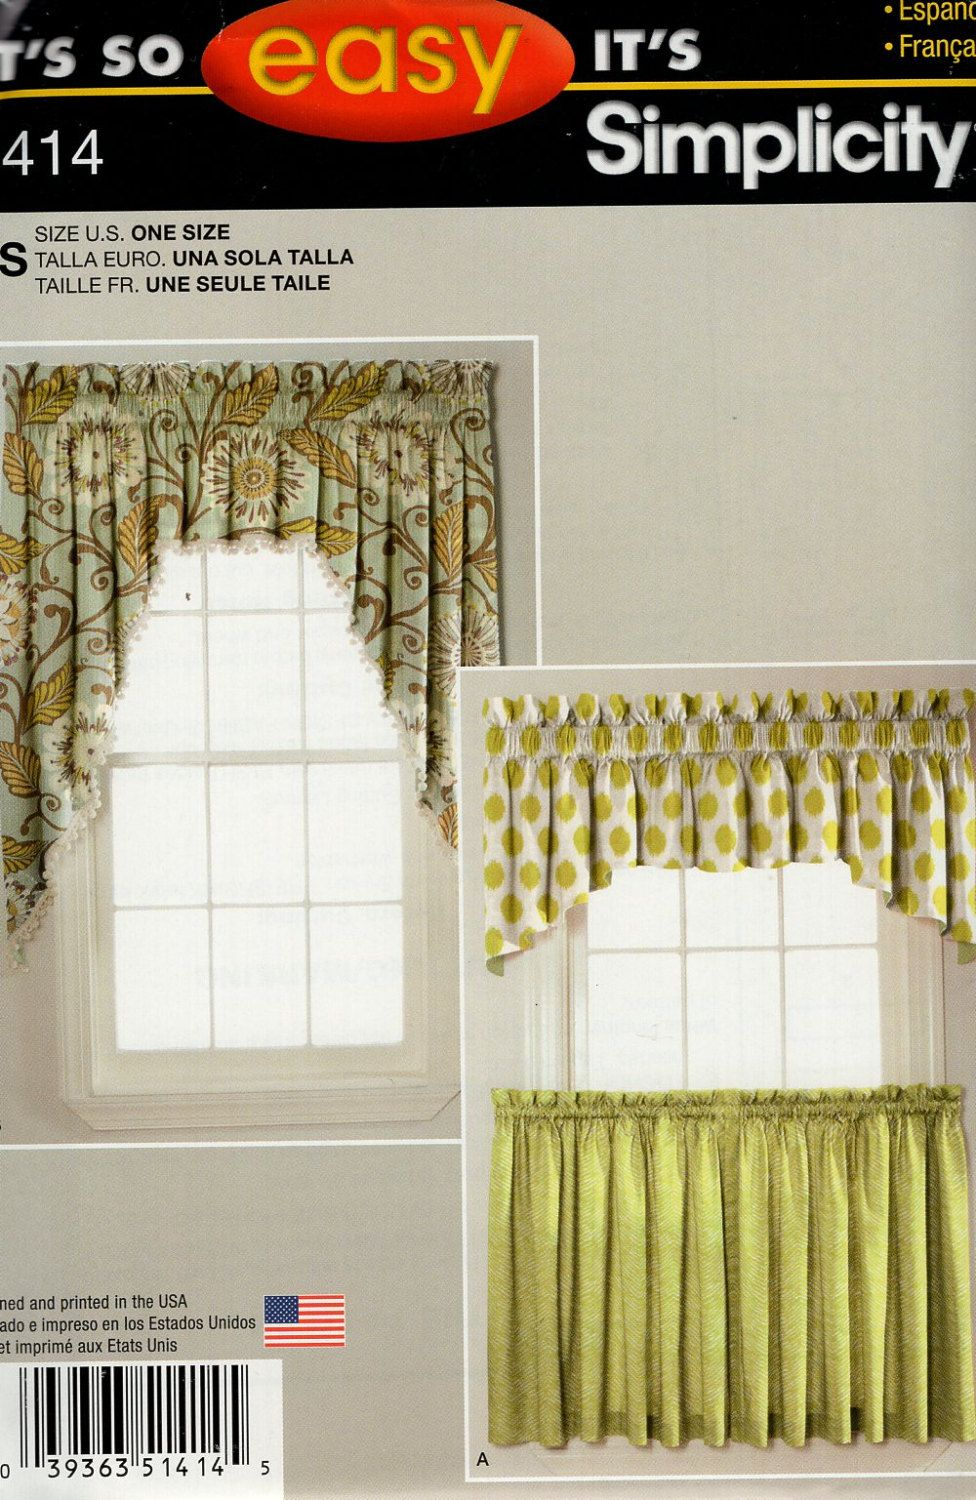 Simplicity Window Treatments Sewing Pattern 1414 Free Us Ship Valance Curtains Uncut New Uncut Out Of Prin Curtain Sewing Pattern No Sew Curtains Cafe Curtains